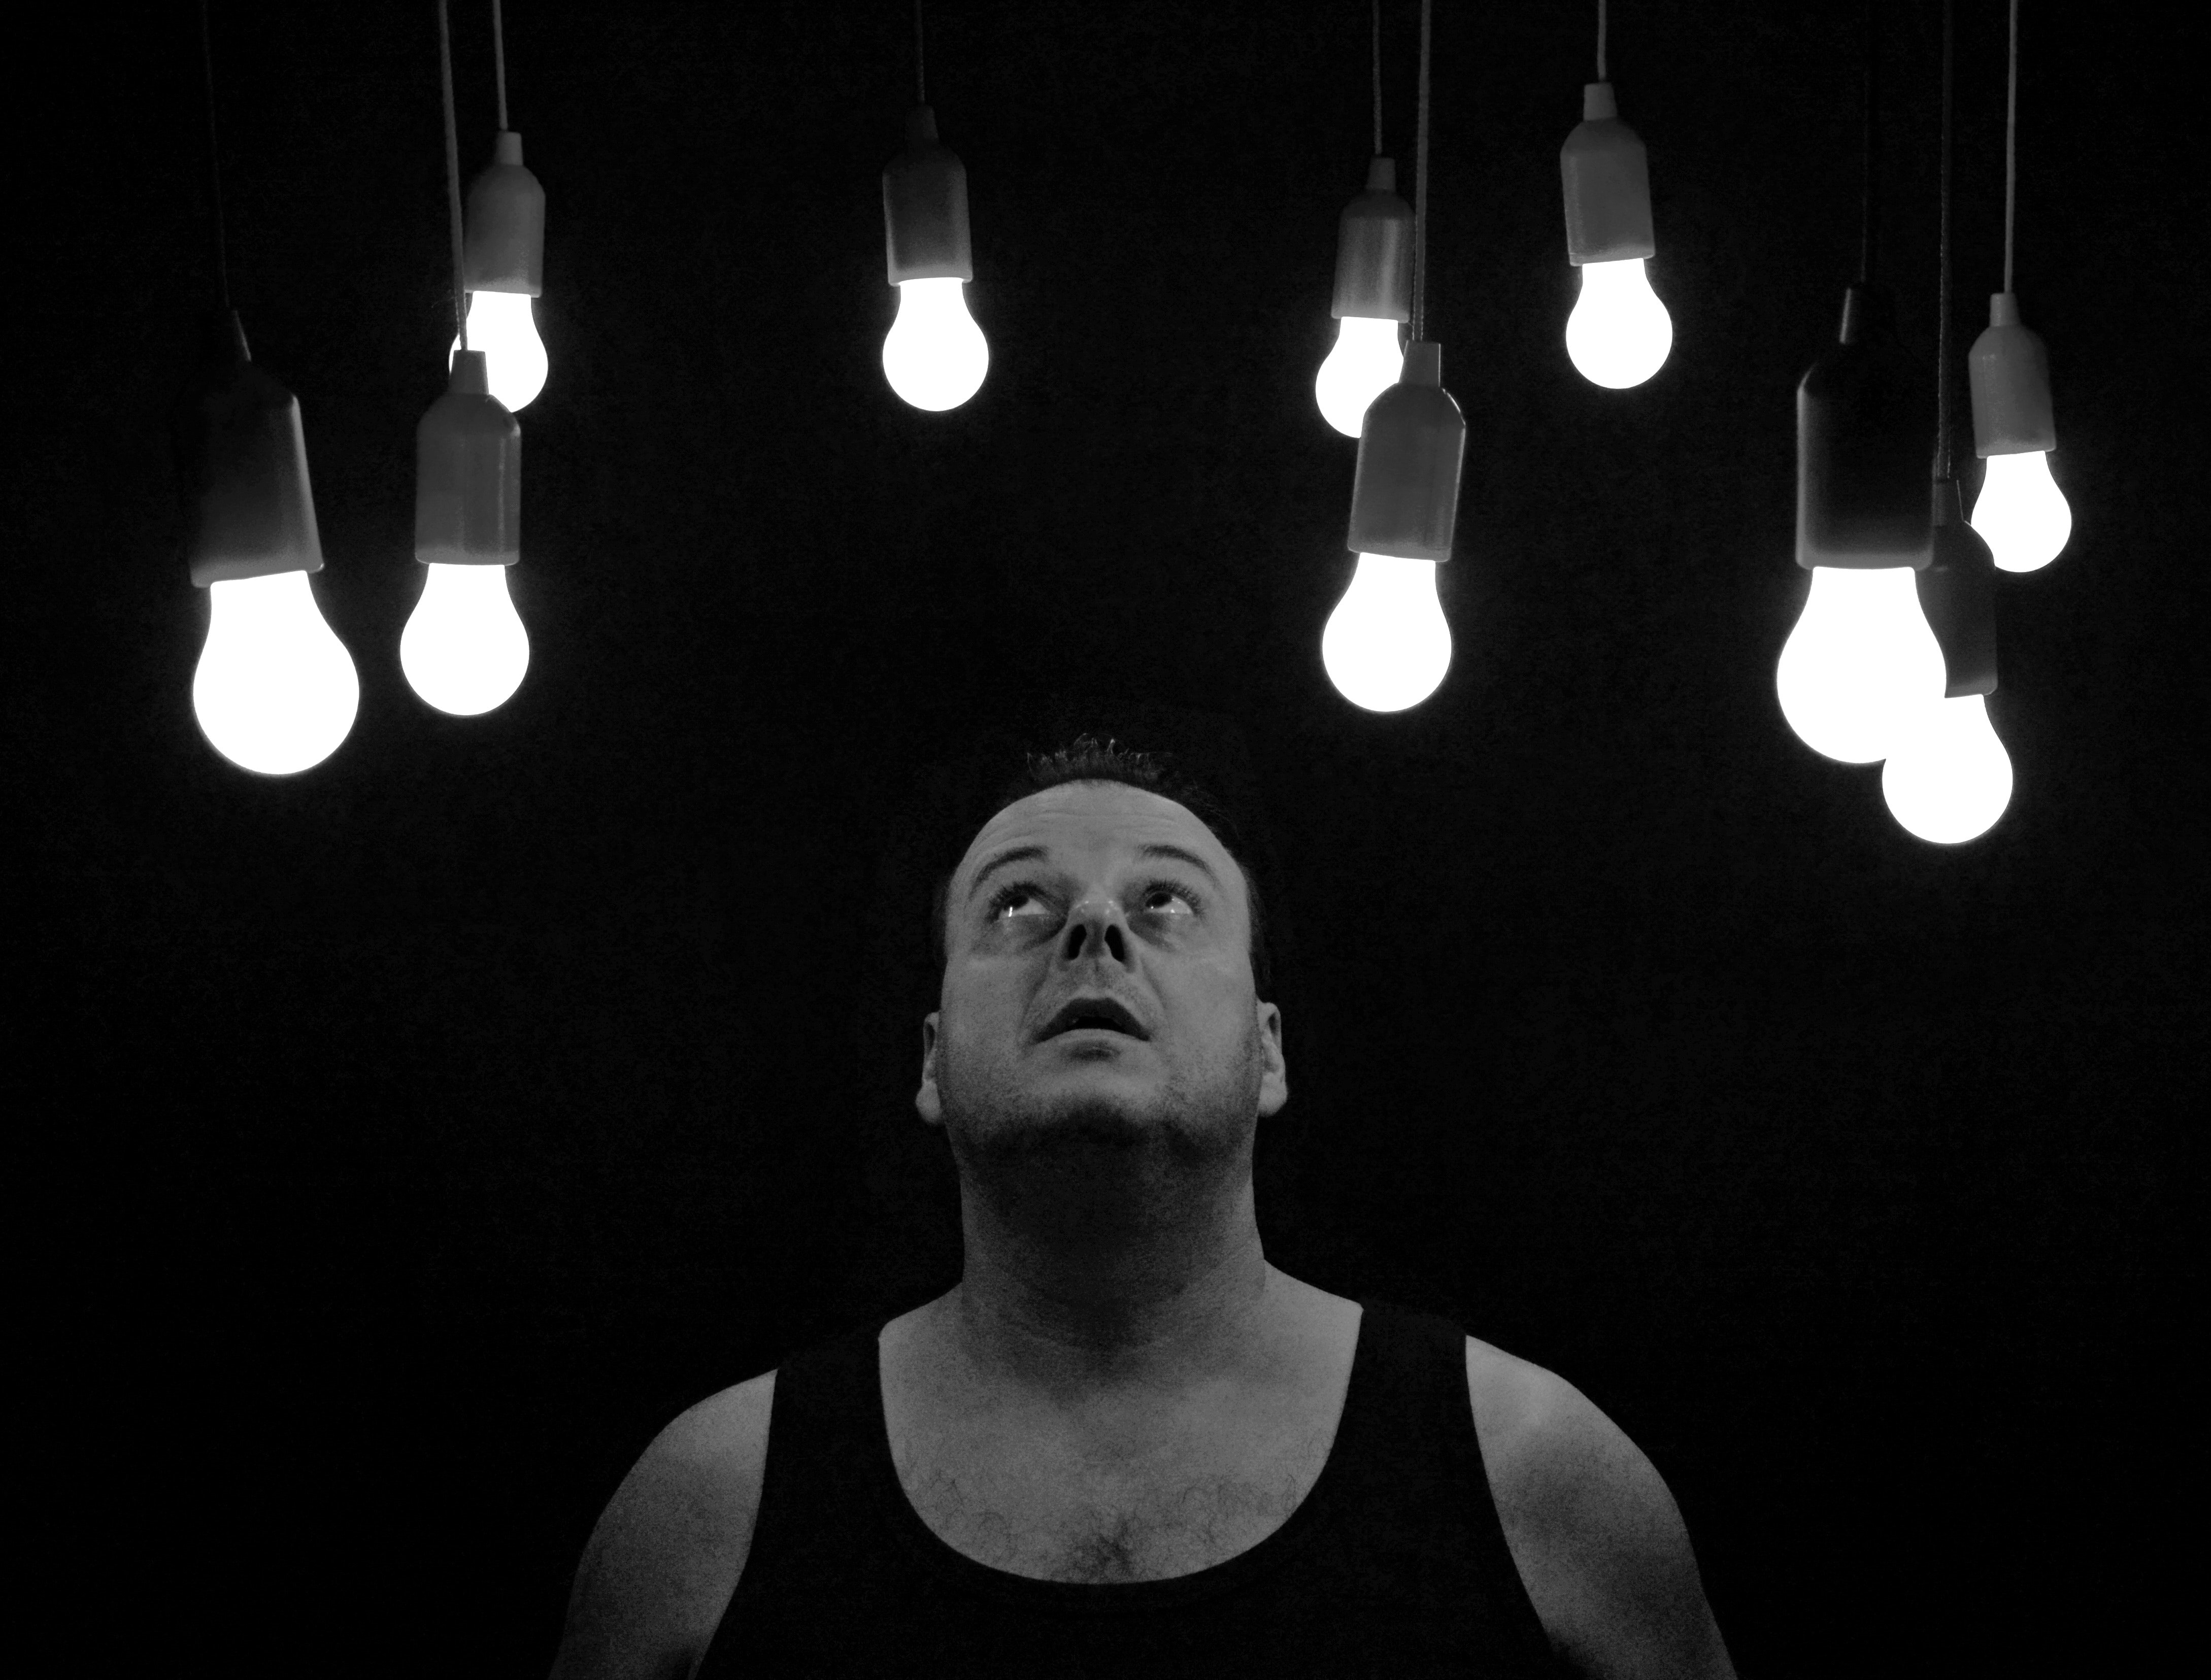 man looking at light bulbs